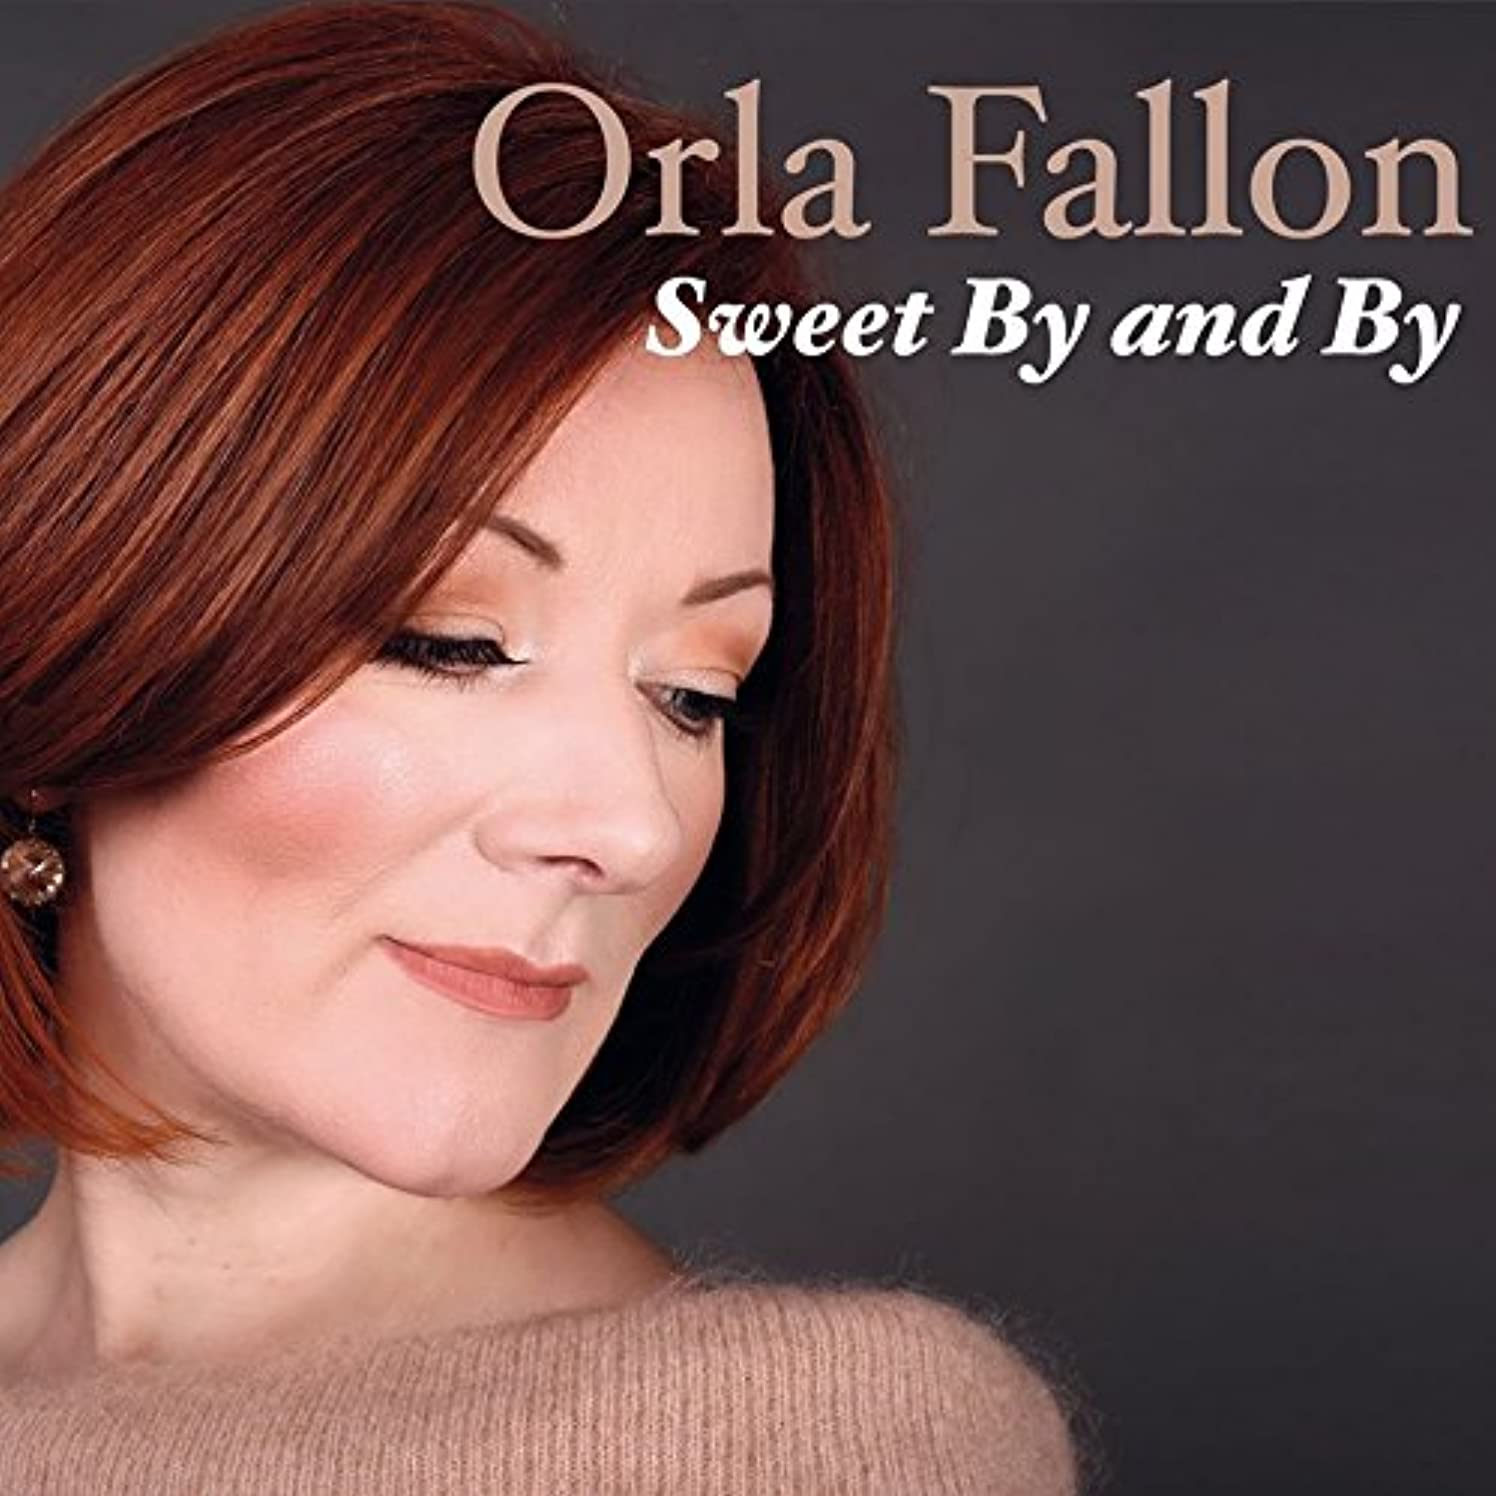 Orla Fallon - Sweet By and By CD (of Celtic Woman)